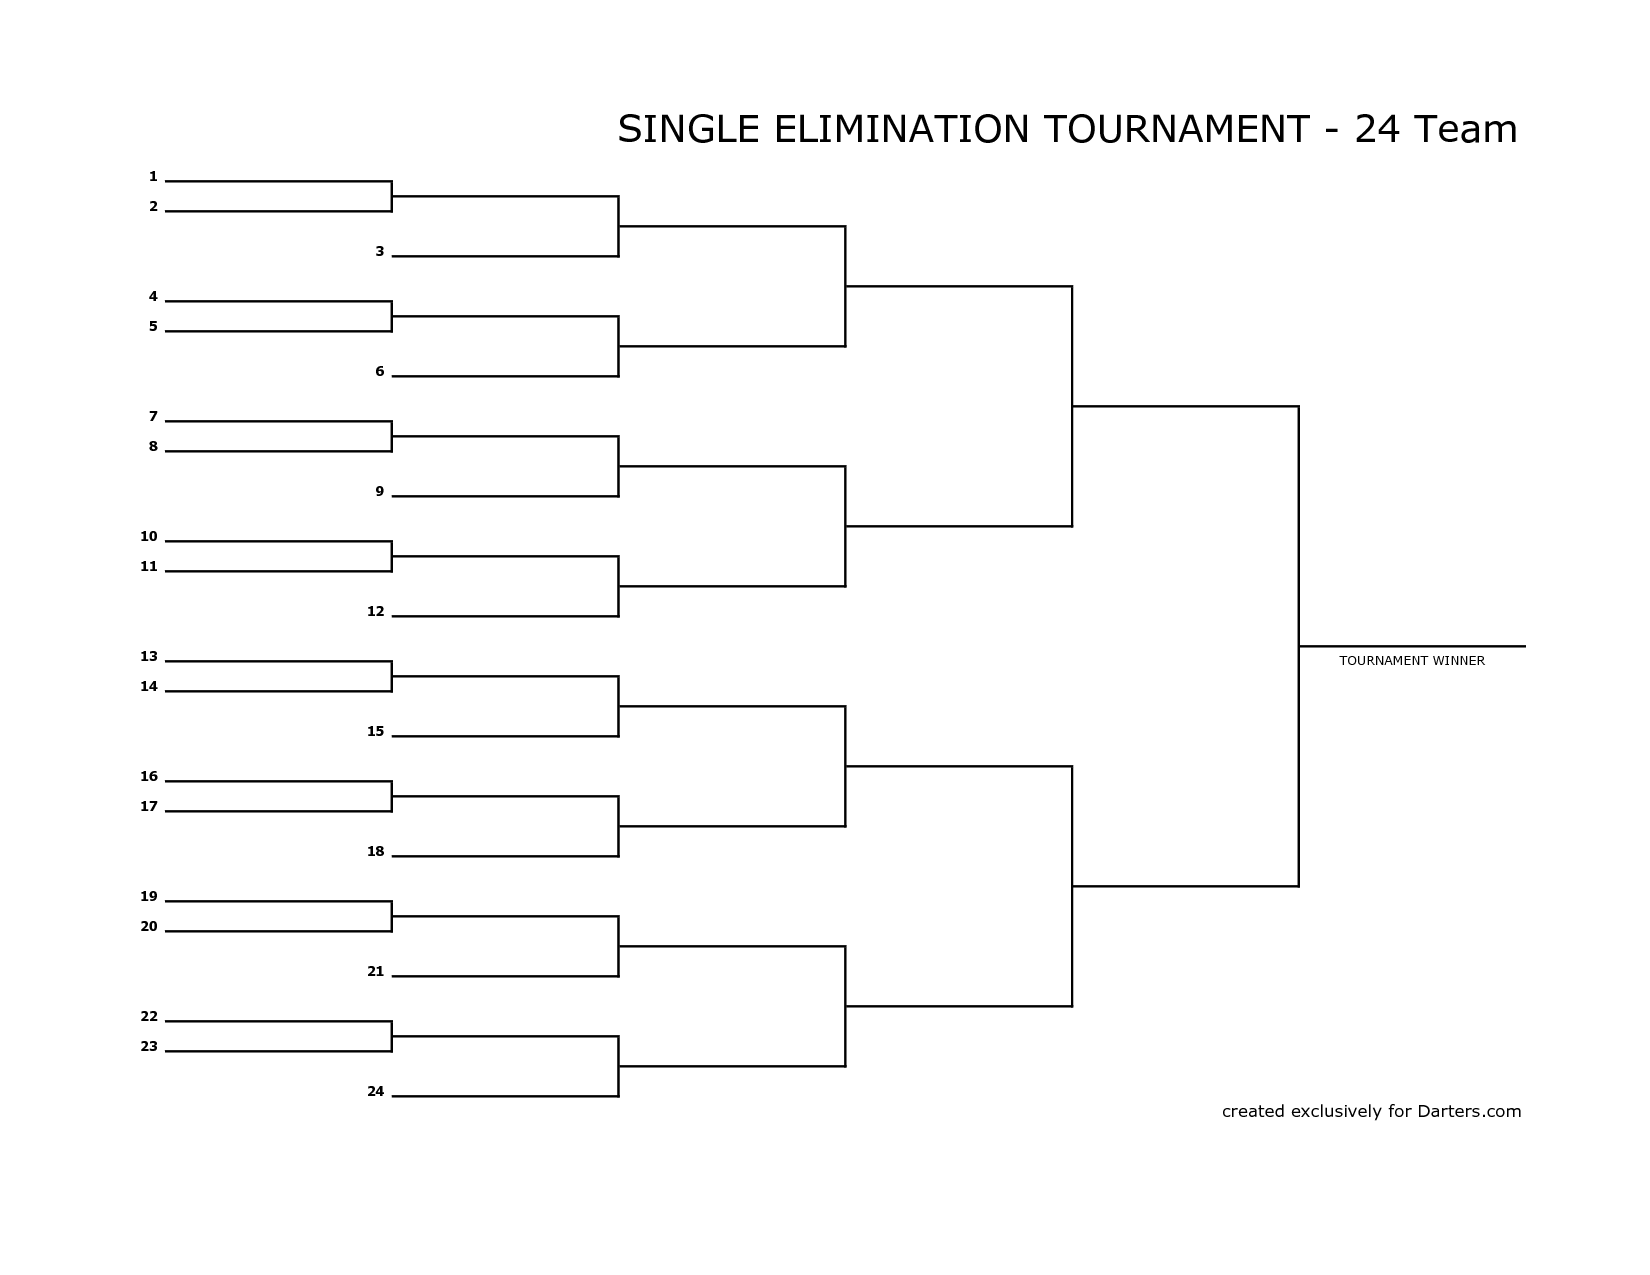 4 Team Single Elimination Seeded Tournament Bracket